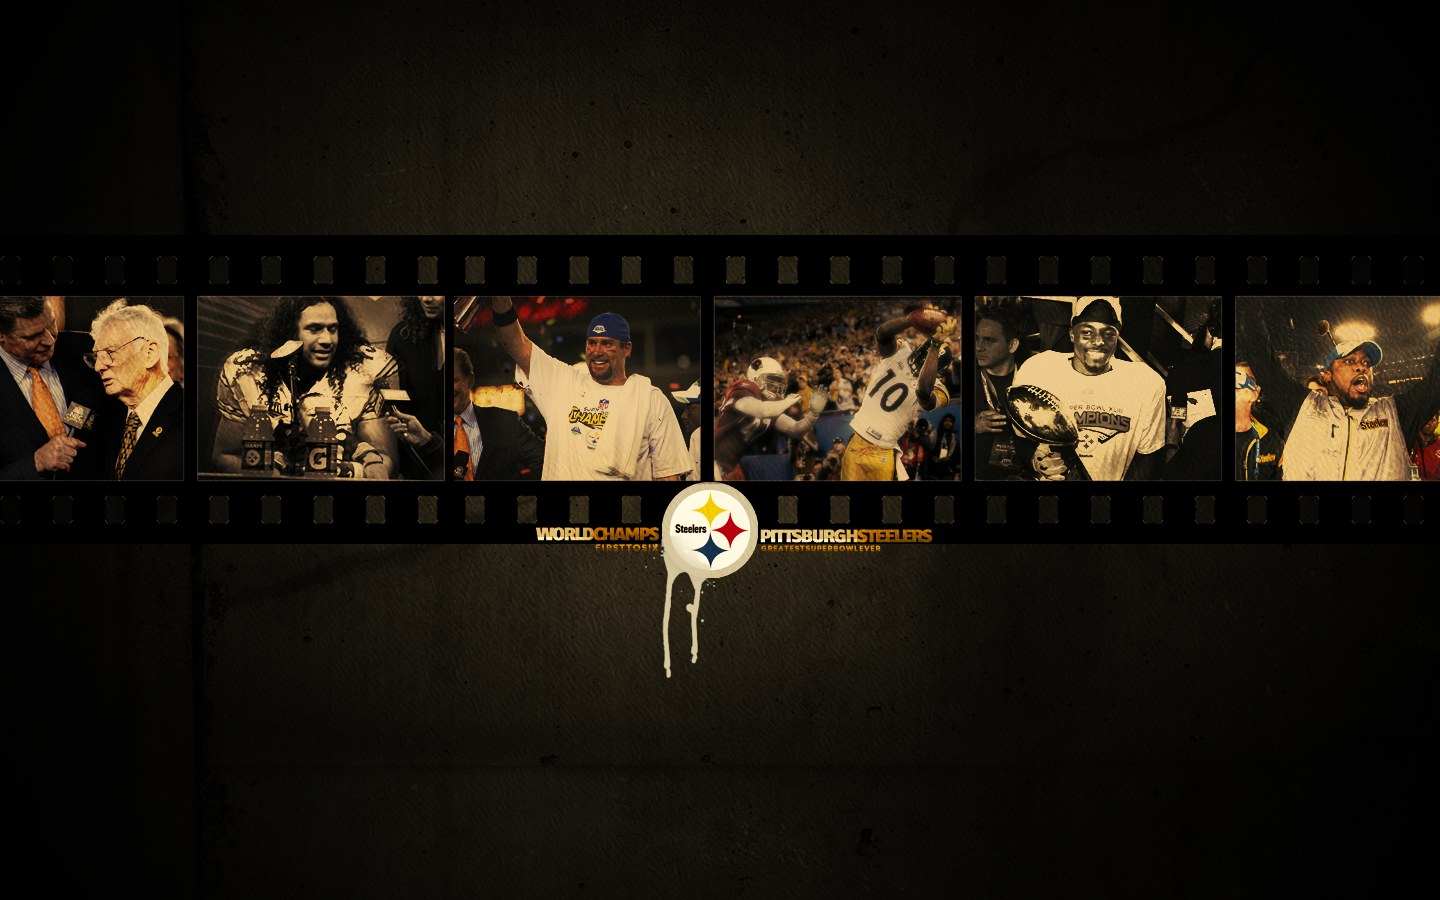 pittsburgh steelers wallpaper for comput Wallpaper 1440x900